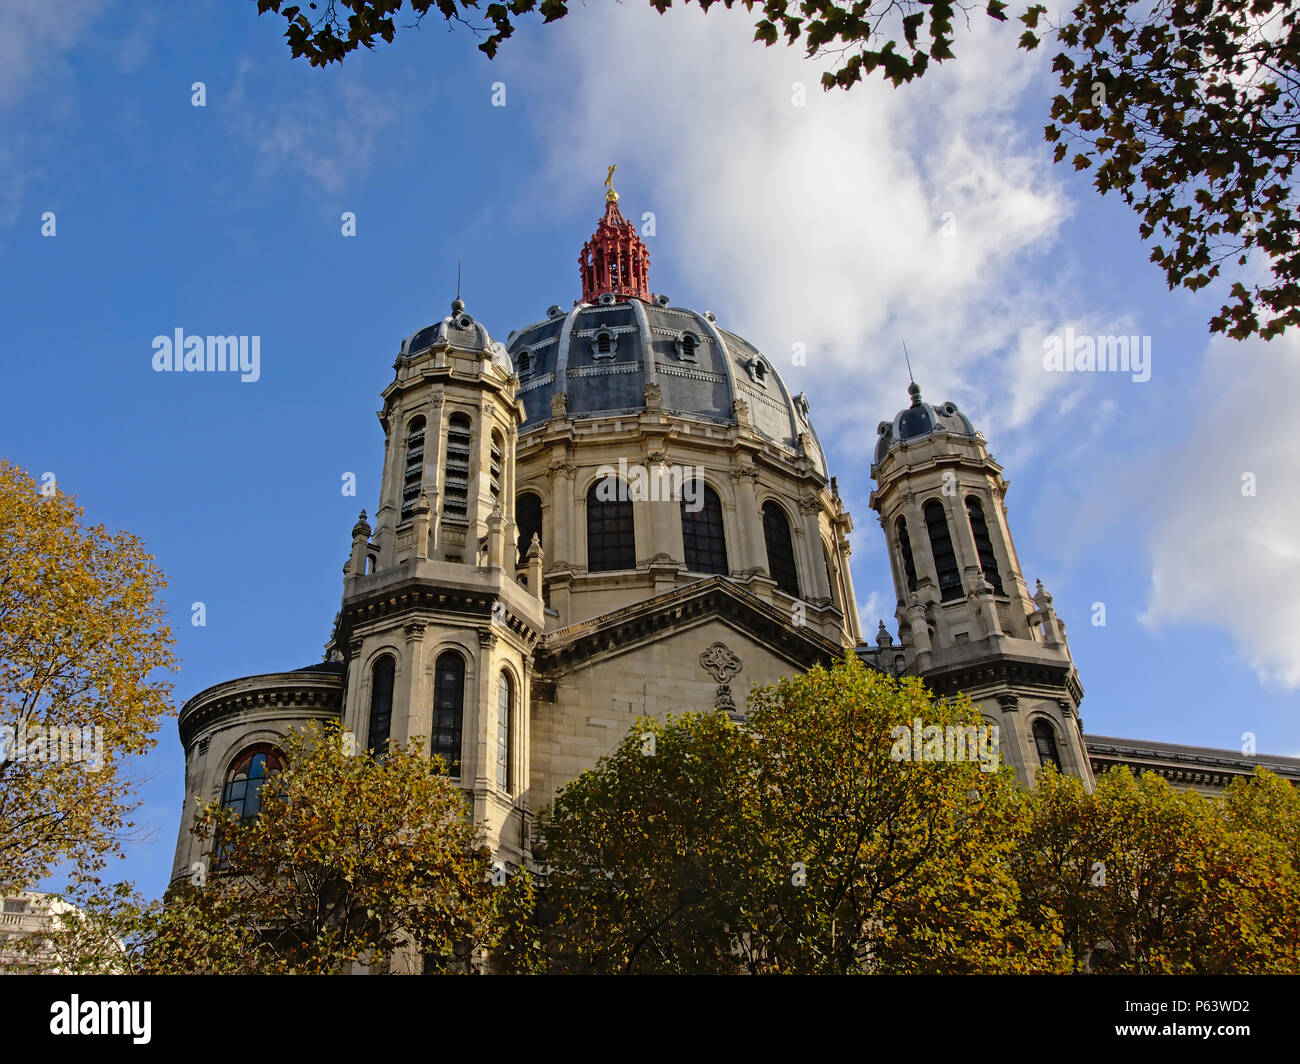 Cupola with red crown and towers of the Saint Augustin church in Second Empire style in Paris, France on a sunny day with blue sky and soft clouds, lo - Stock Image